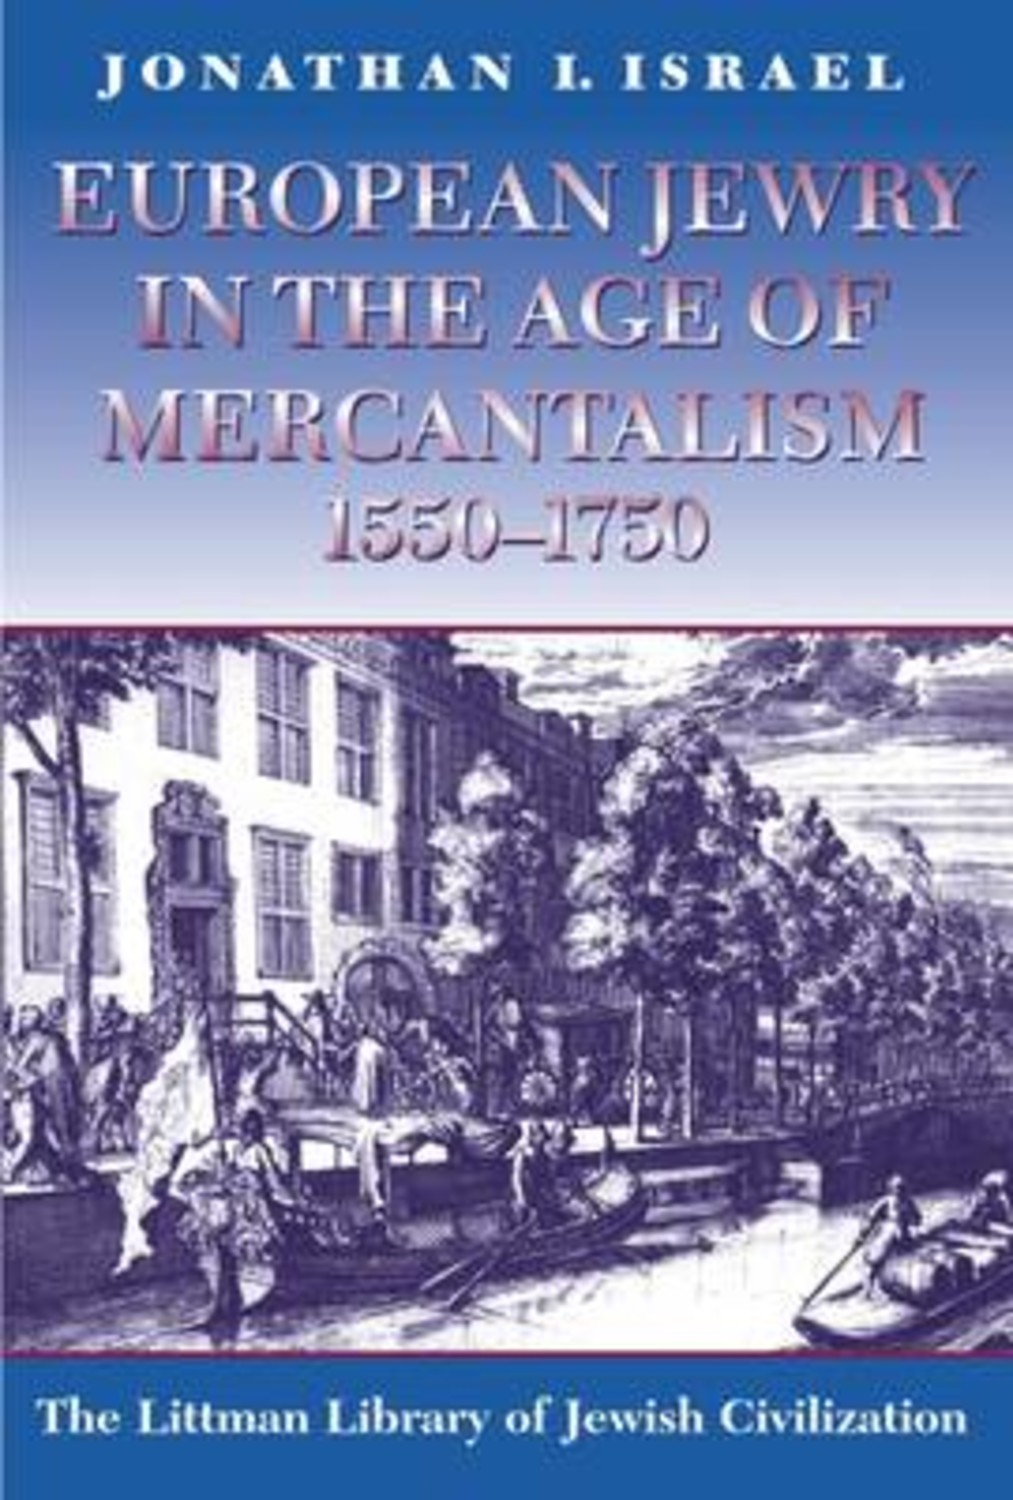 European Jewry in the Age of Mercantilism, 1550-1750